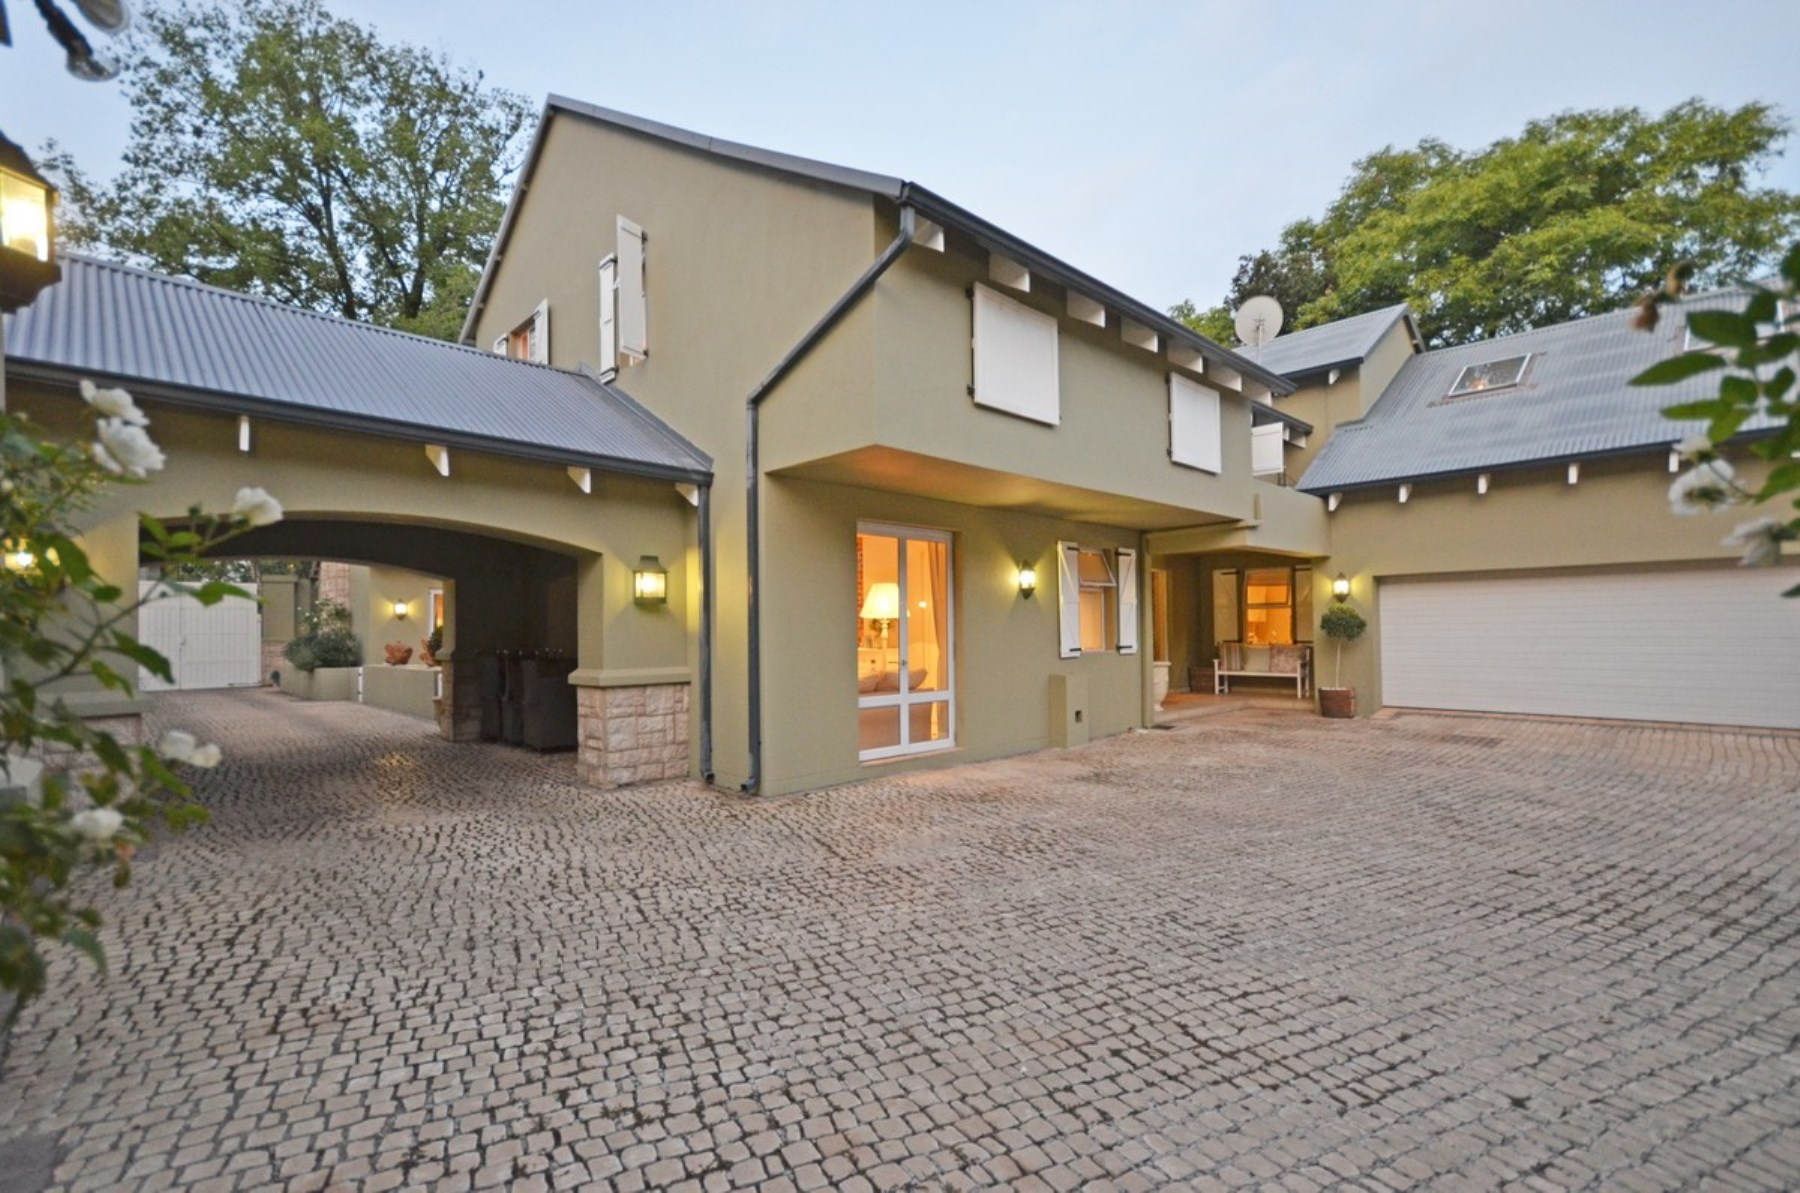 Single Family Home for Sale at A delightful home inspired by Provence. Atholl, Johannesburg, Gauteng South Africa